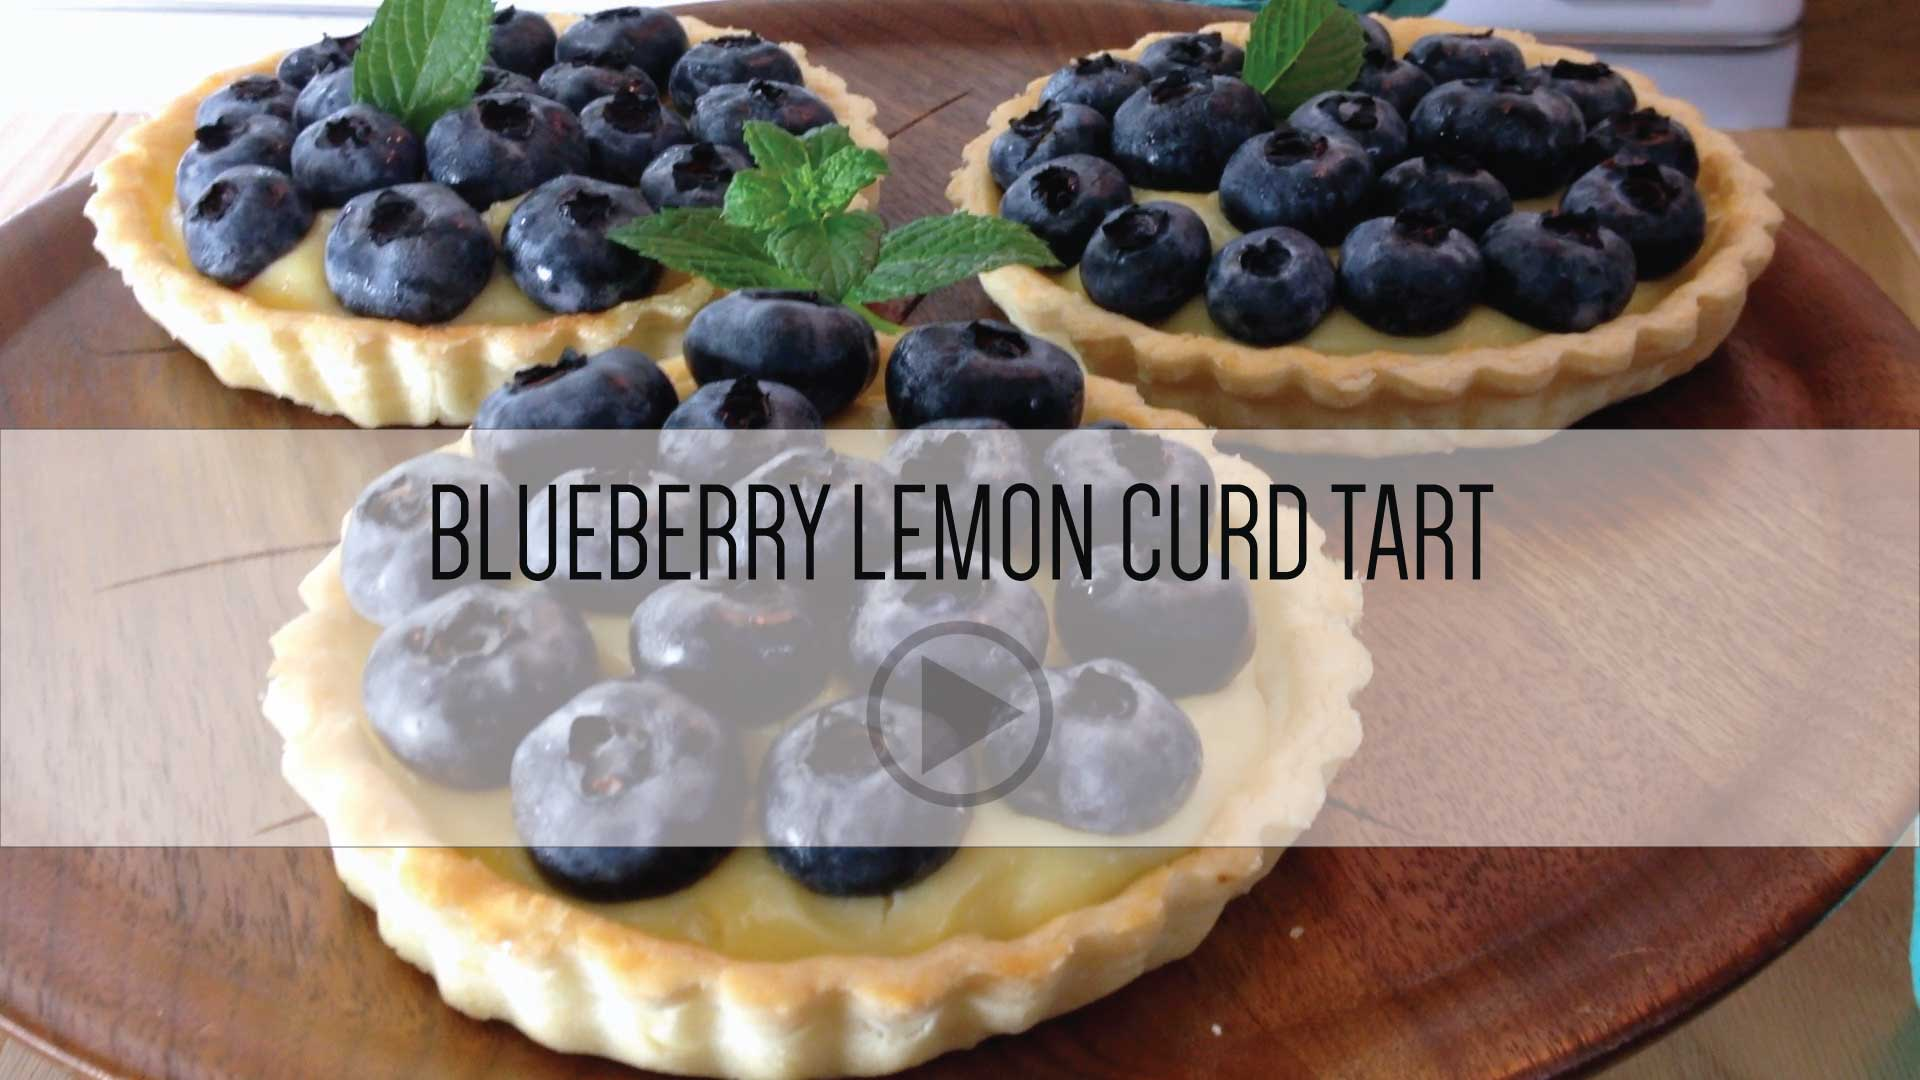 Blueberry Lemon Curd Video